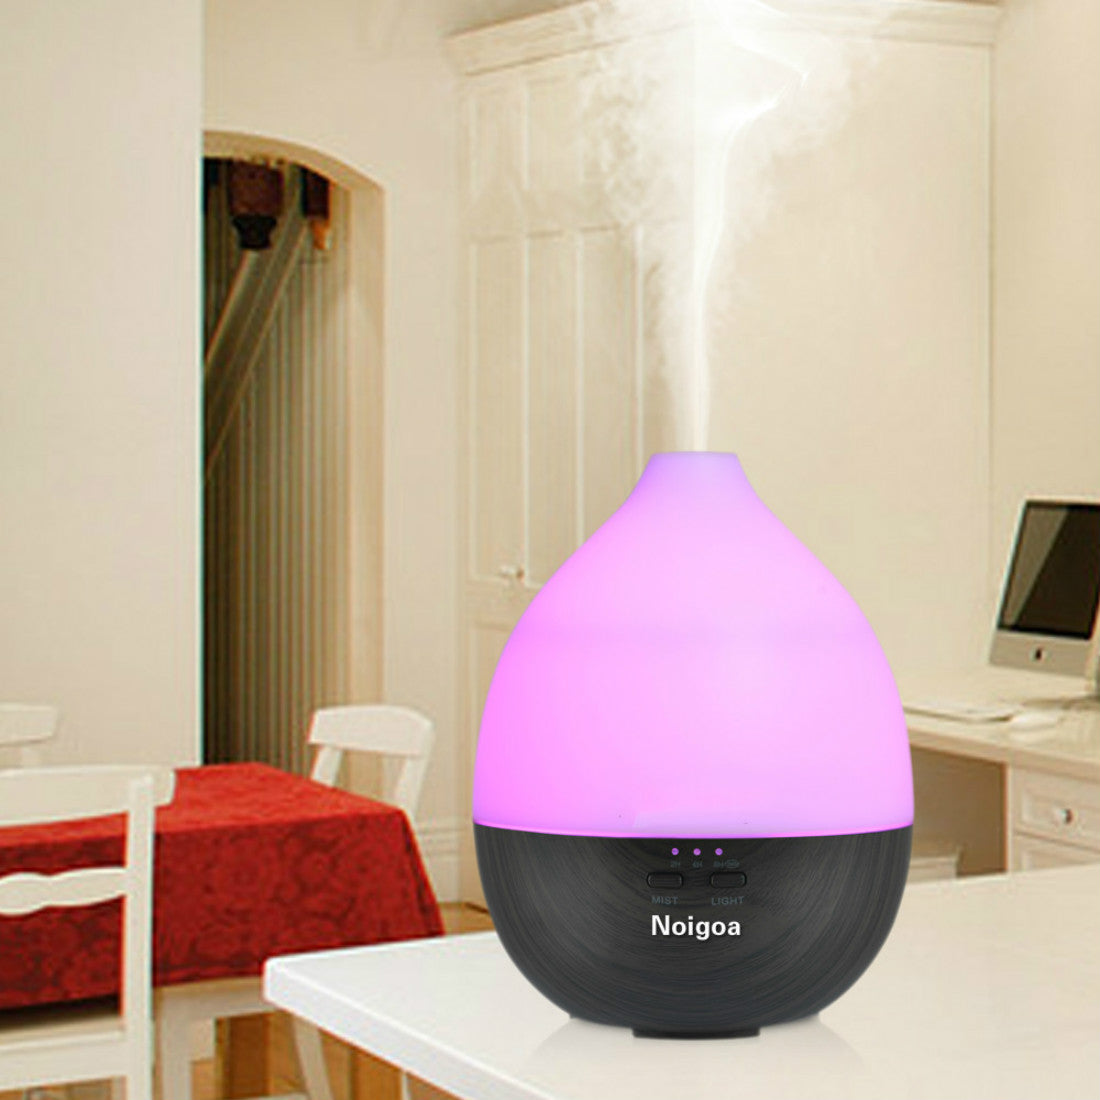 Wooden grain ultrasonic aroma diffuser 200ml Ultrasonic Essential Oil Diffuser Air Humidifier with 7 colors LED Lights